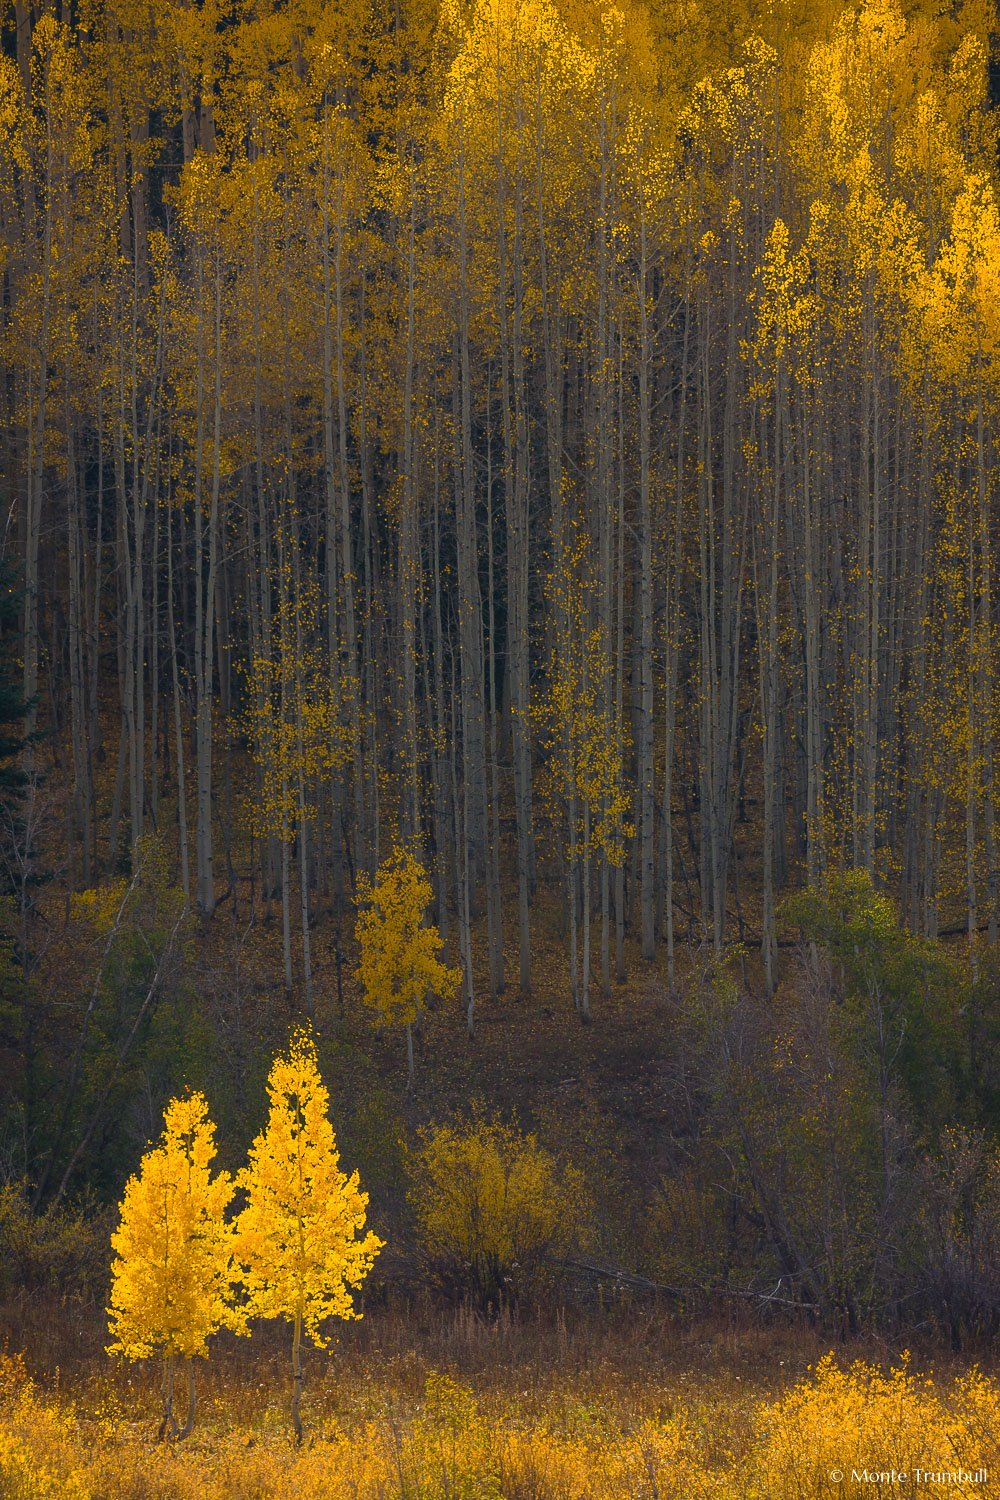 MT-20081001-170344-0124-Colorado-golden-aspens.jpg